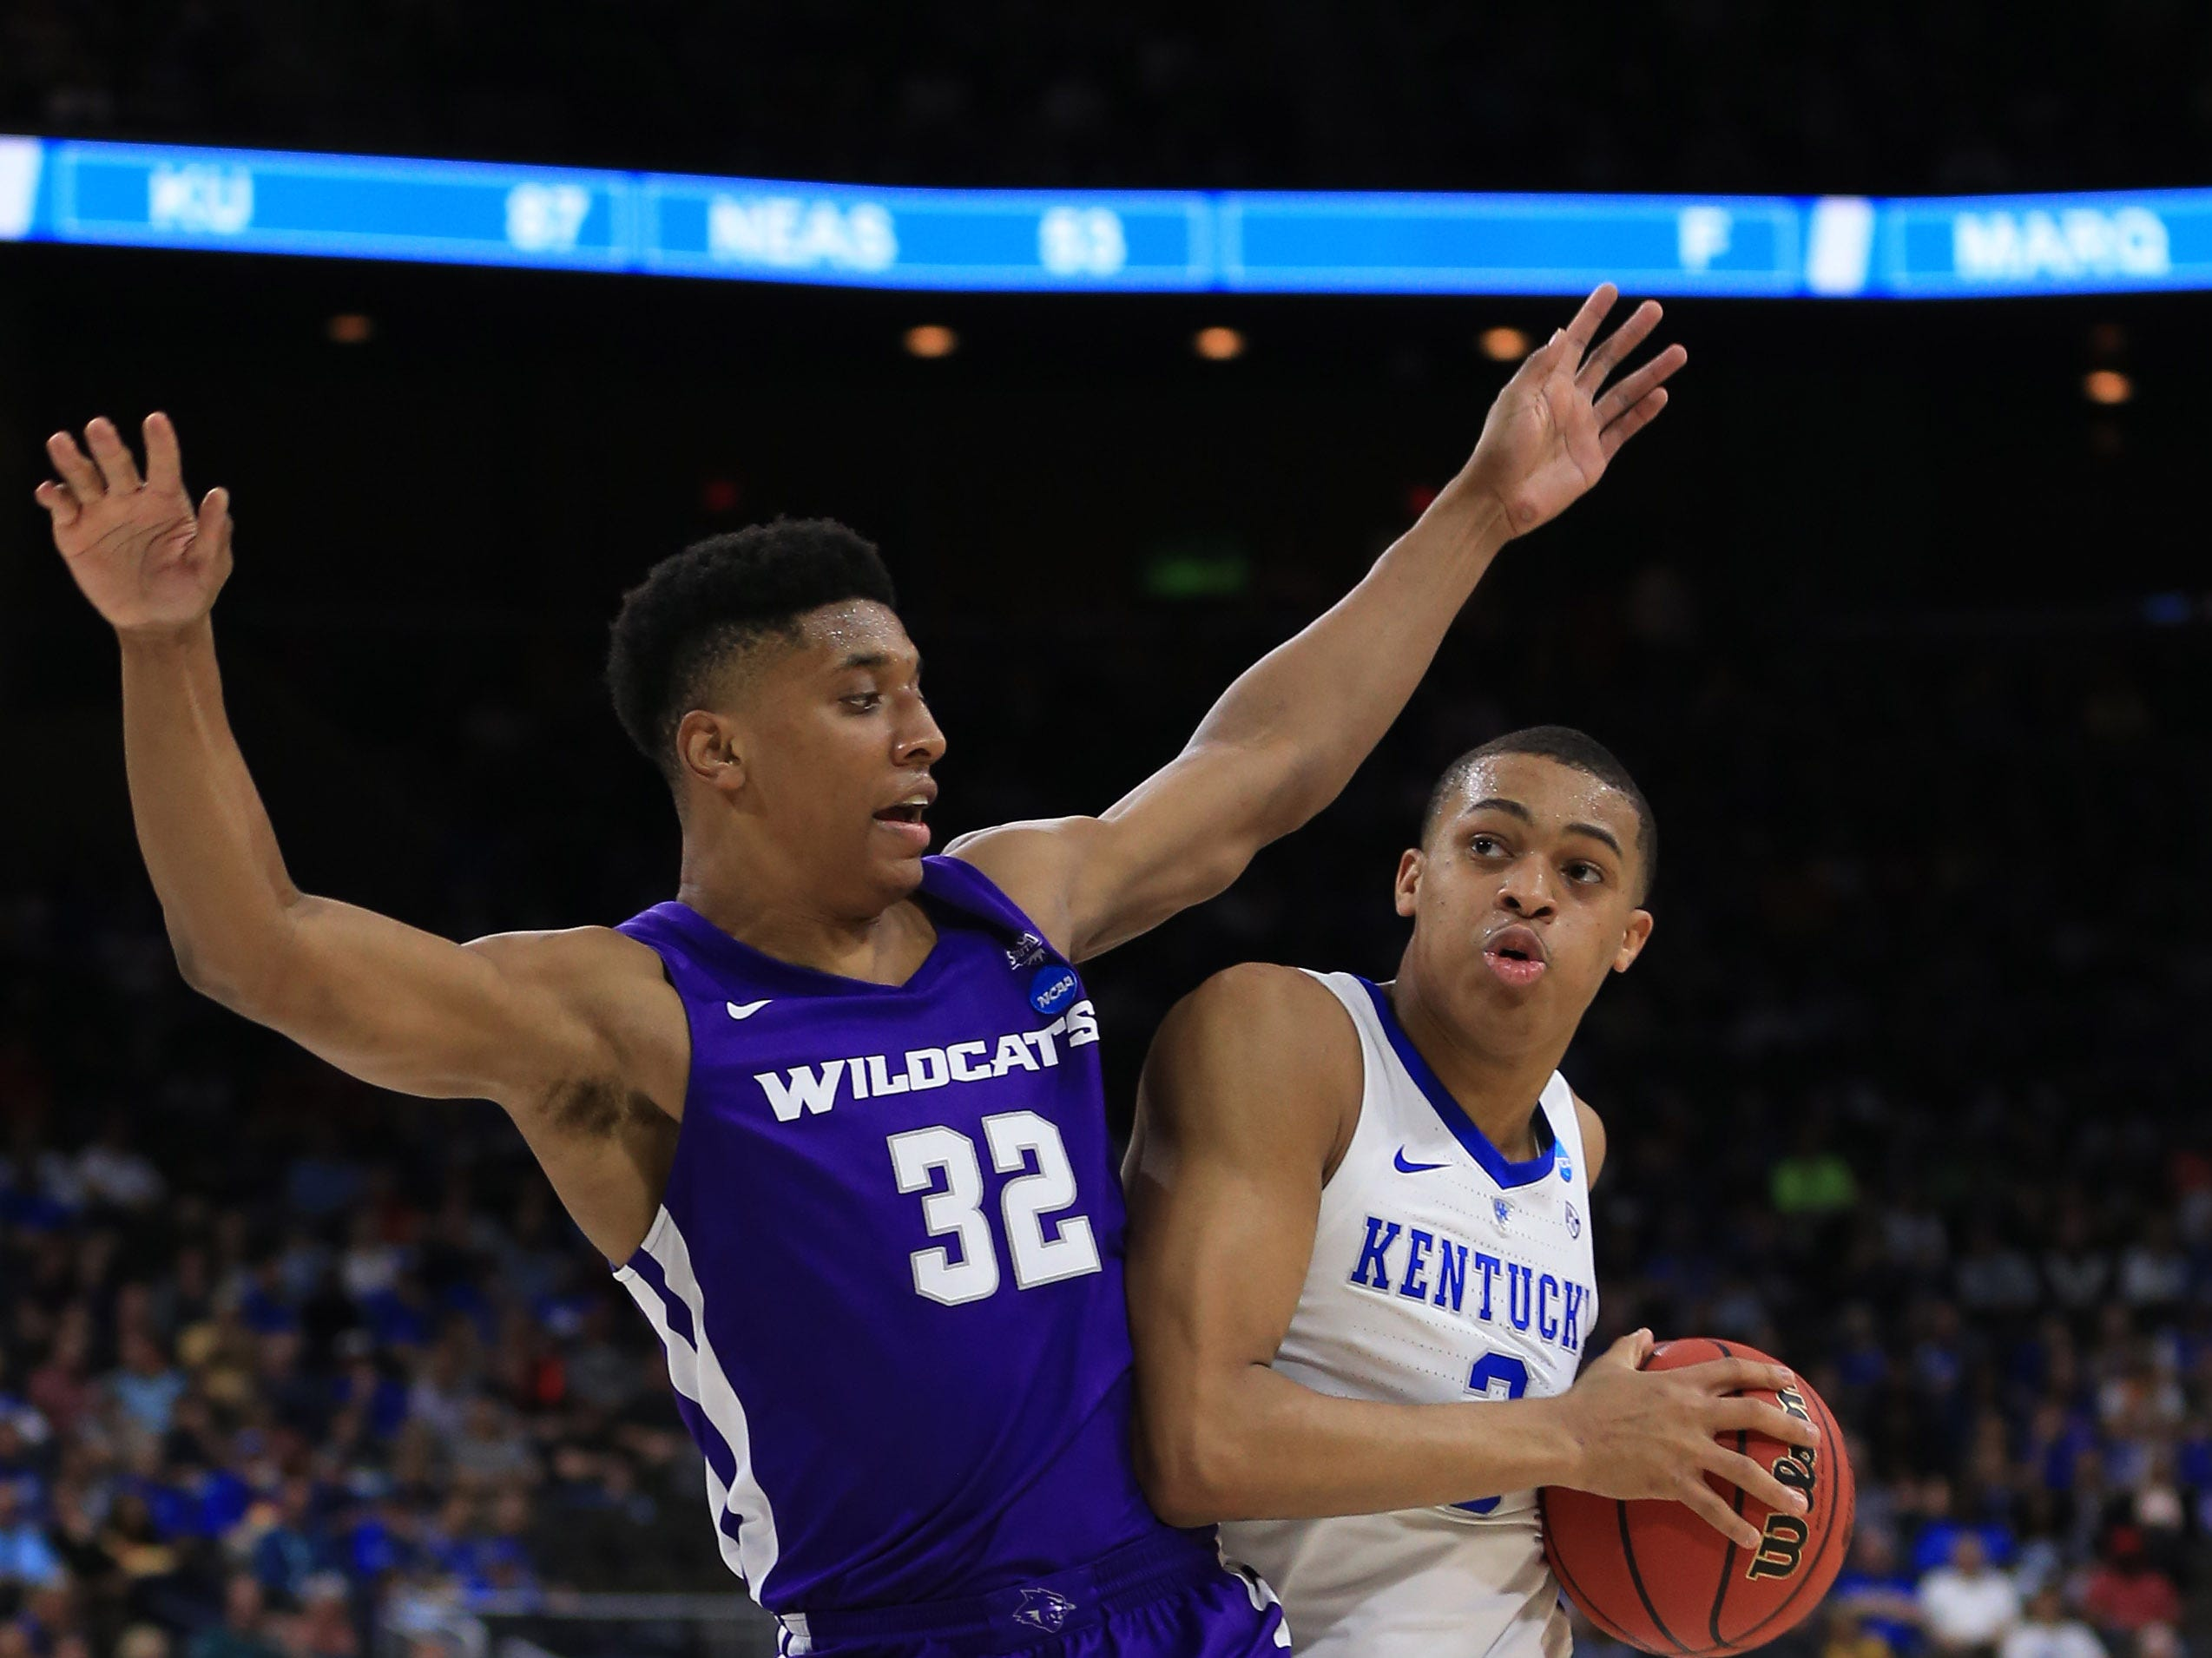 Mar 21, 2019; Jacksonville, FL, USA; Kentucky Wildcats guard Keldon Johnson (3) dribbles the ball as Abilene Christian Wildcats forward Joe Pleasant (32) defends during the first half in the first round of the 2019 NCAA Tournament at Jacksonville Veterans Memorial Arena. Mandatory Credit: Matt Stamey-USA TODAY Sports